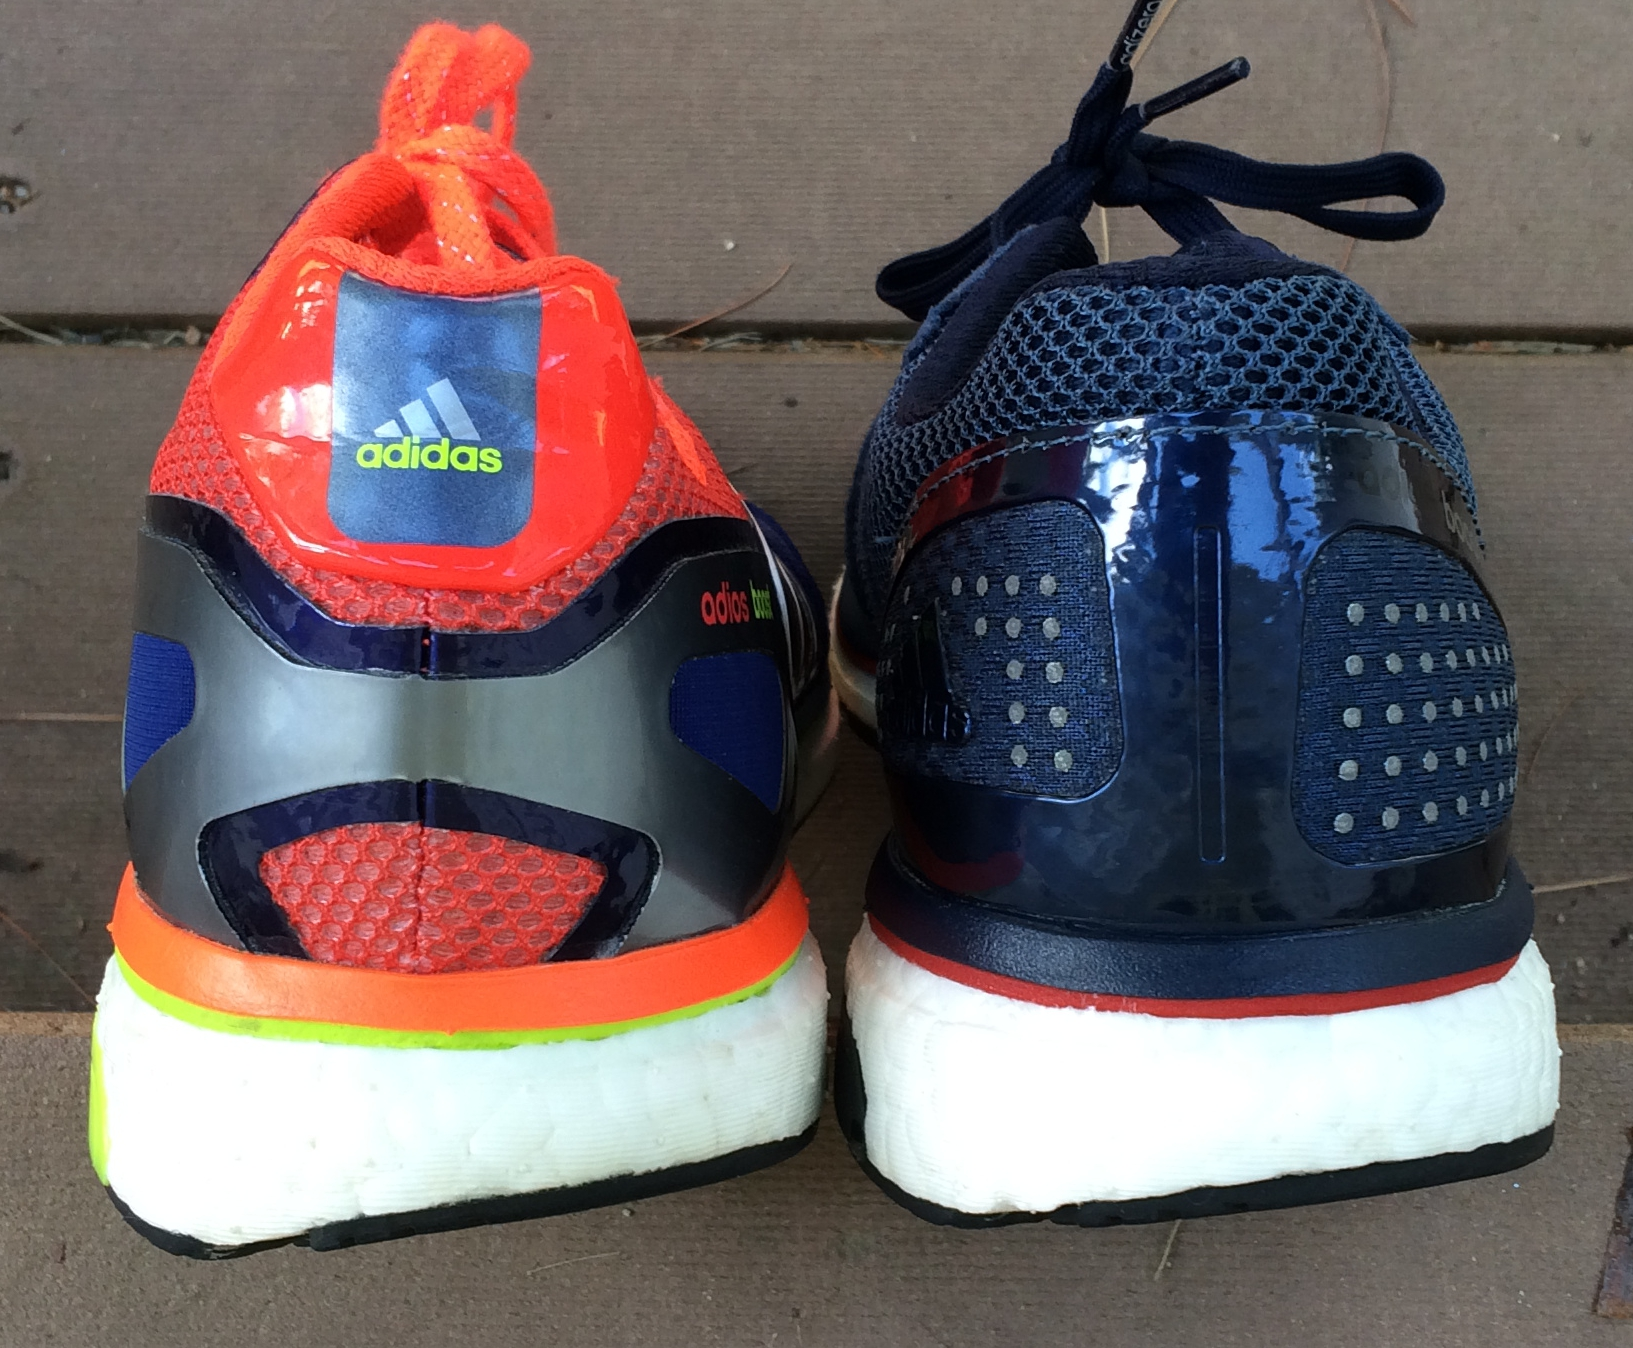 Adidas Boost Review 2014